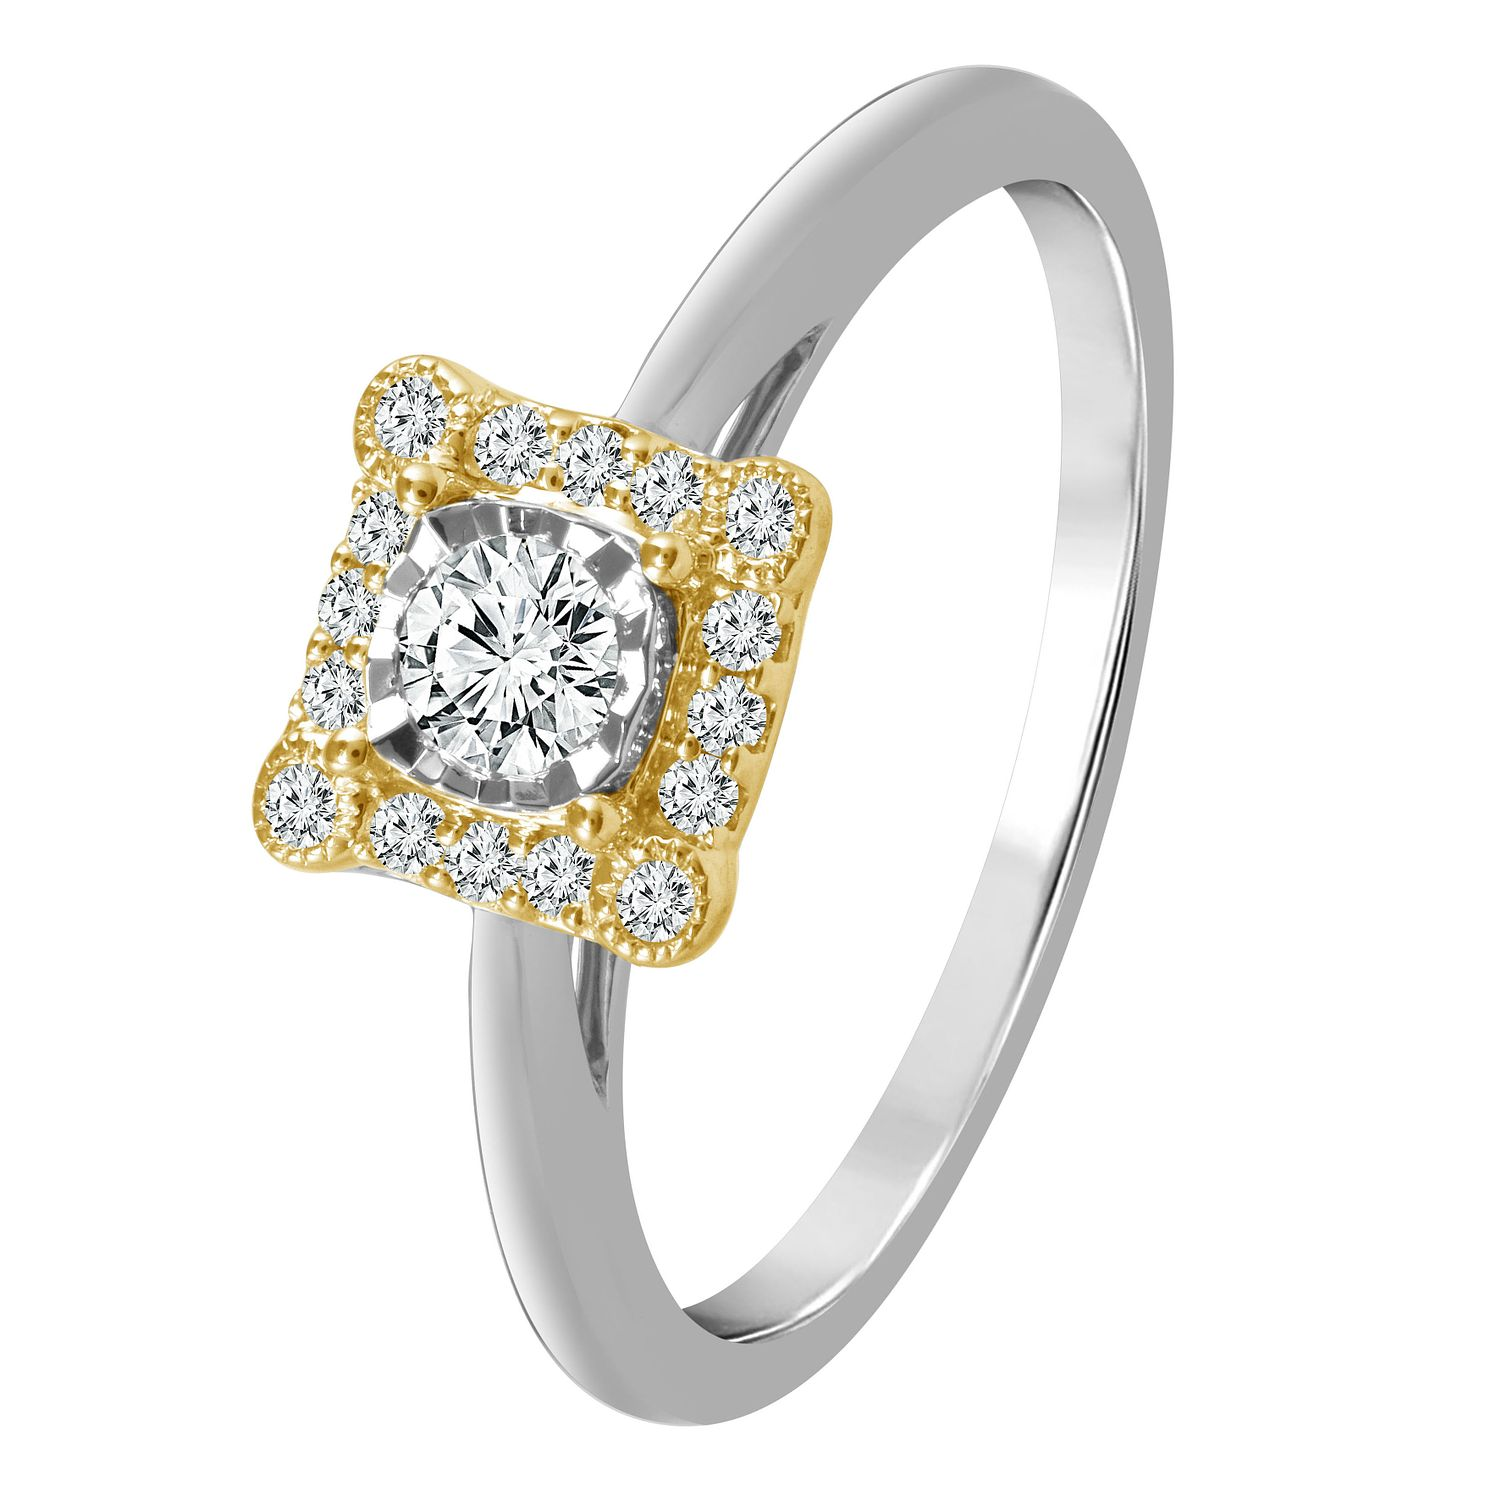 9ct White & Yellow Gold 1/4ct Diamond Halo Ring - Product number 4321367